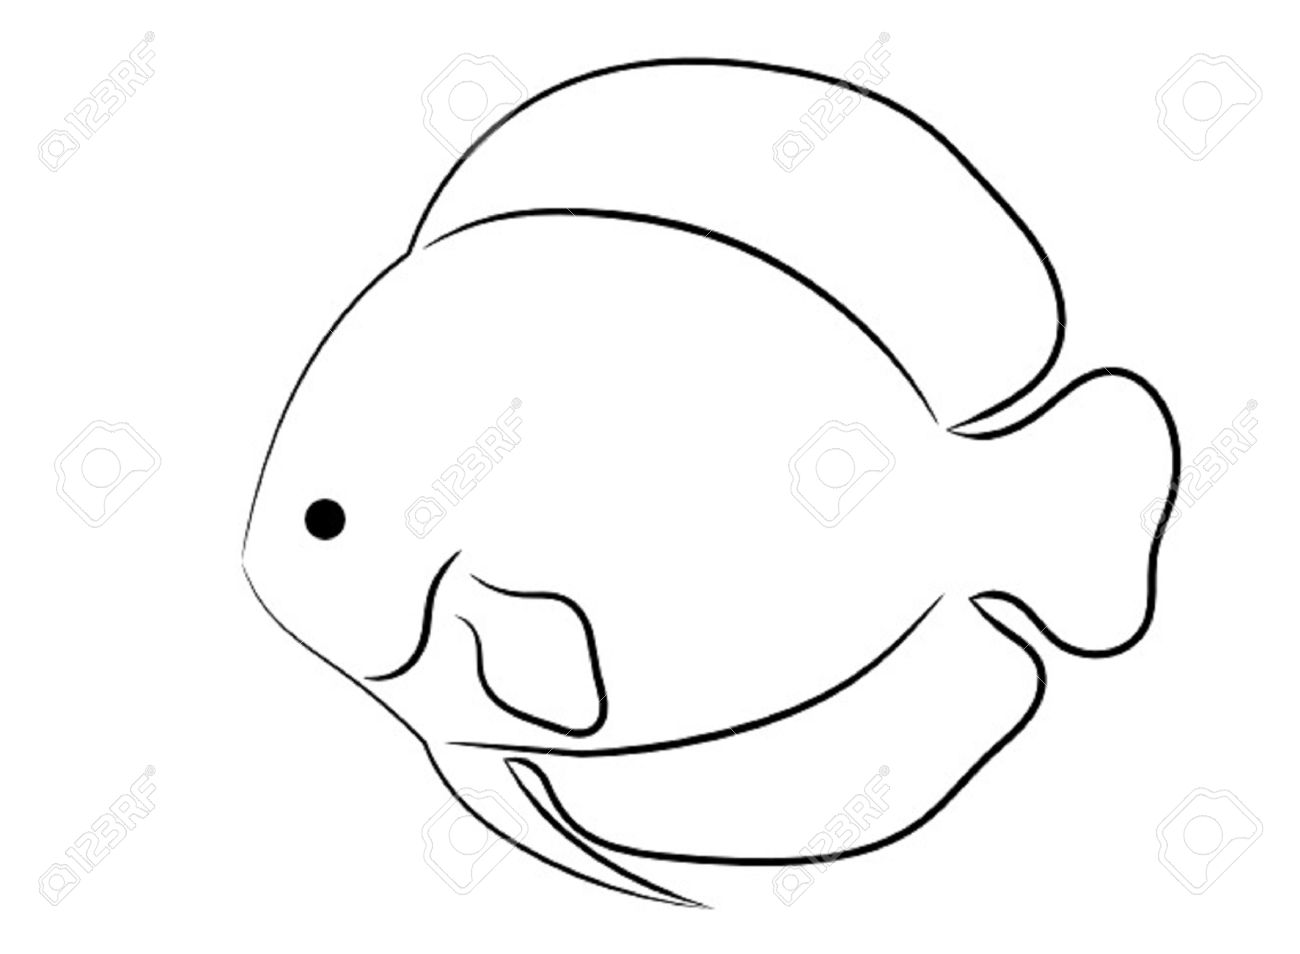 tropical fish drawing at getdrawings com free for clownfish clipart #37 Seahorse Clip Art